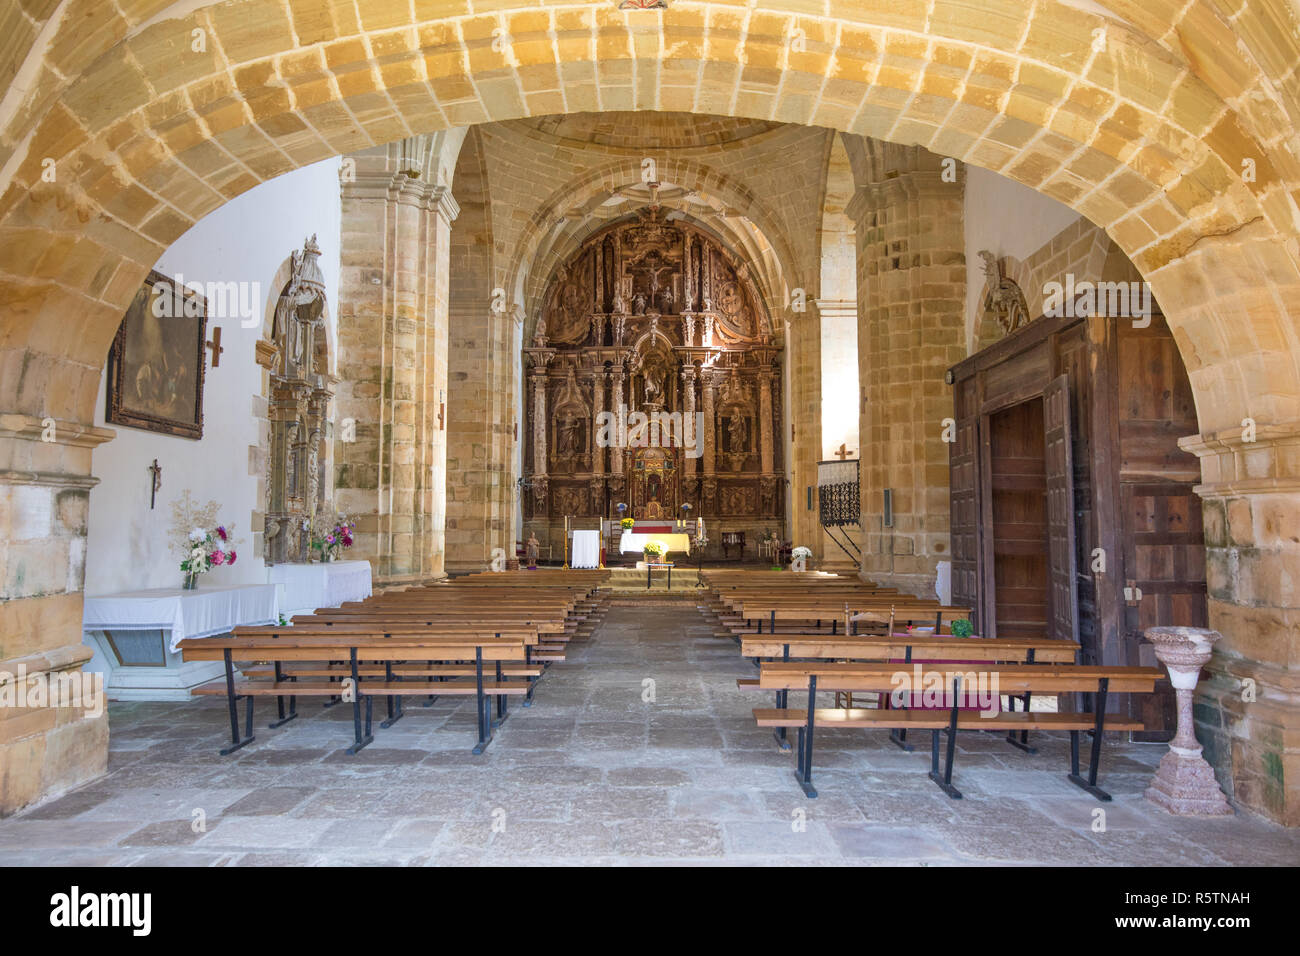 indoor of church of Saint Martin de Tours, colonial baroque style public monument from 1768, in Ciguenza, Alfoz Lloredo, Cantabria, Spain, Europe - Stock Image